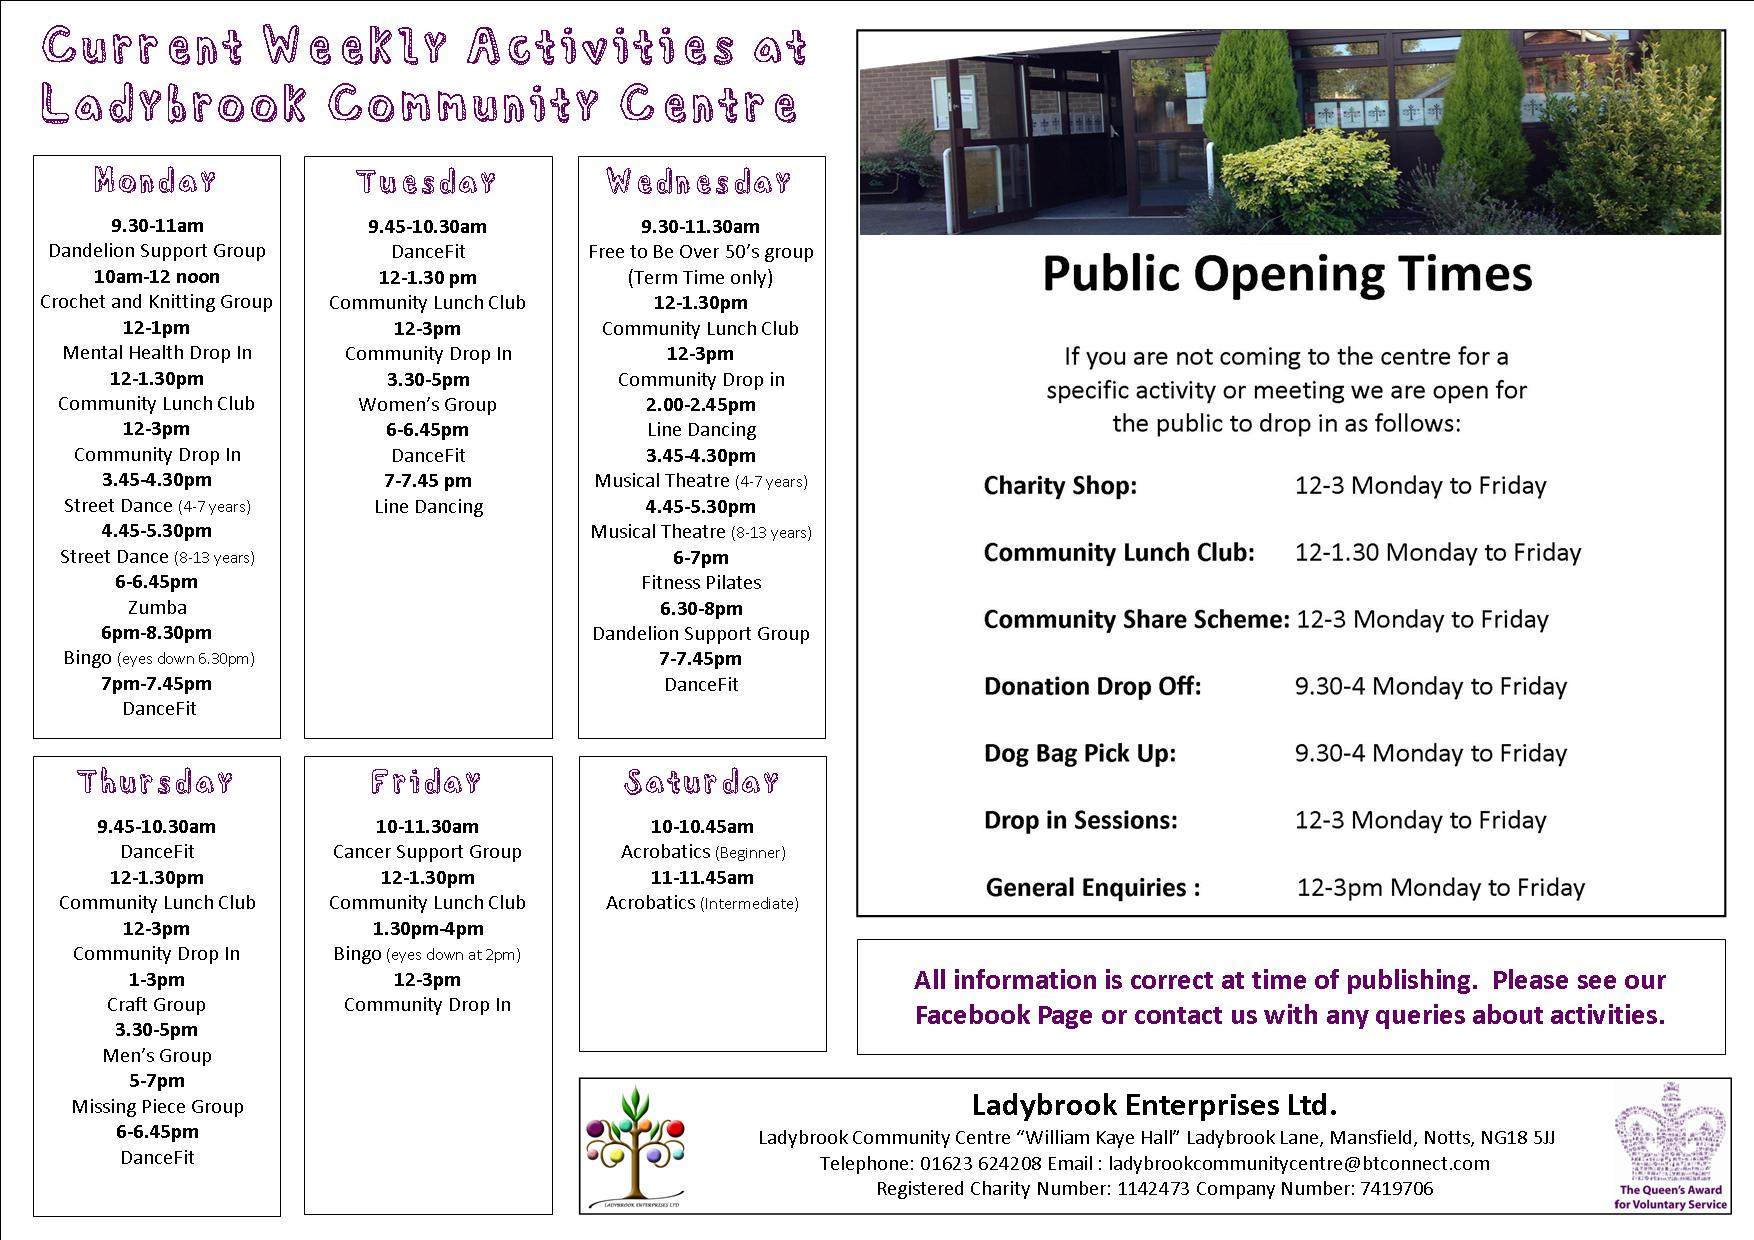 weekly activities with opening hours July 2019